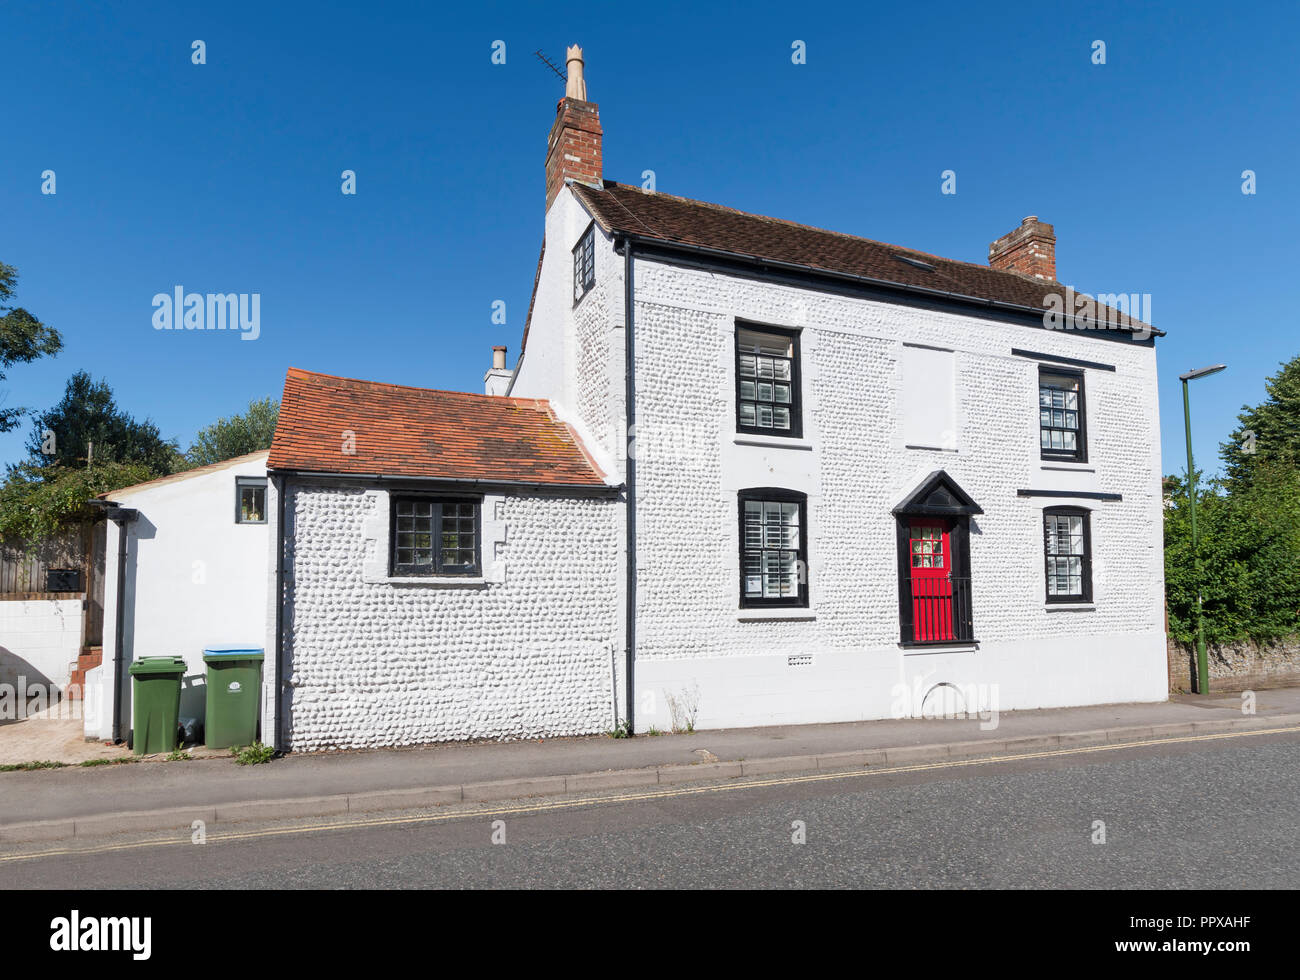 Grade II listed (grade 2 listed) white period house with raised front door & cellar in Littlehampton, West Sussex, UK. - Stock Image